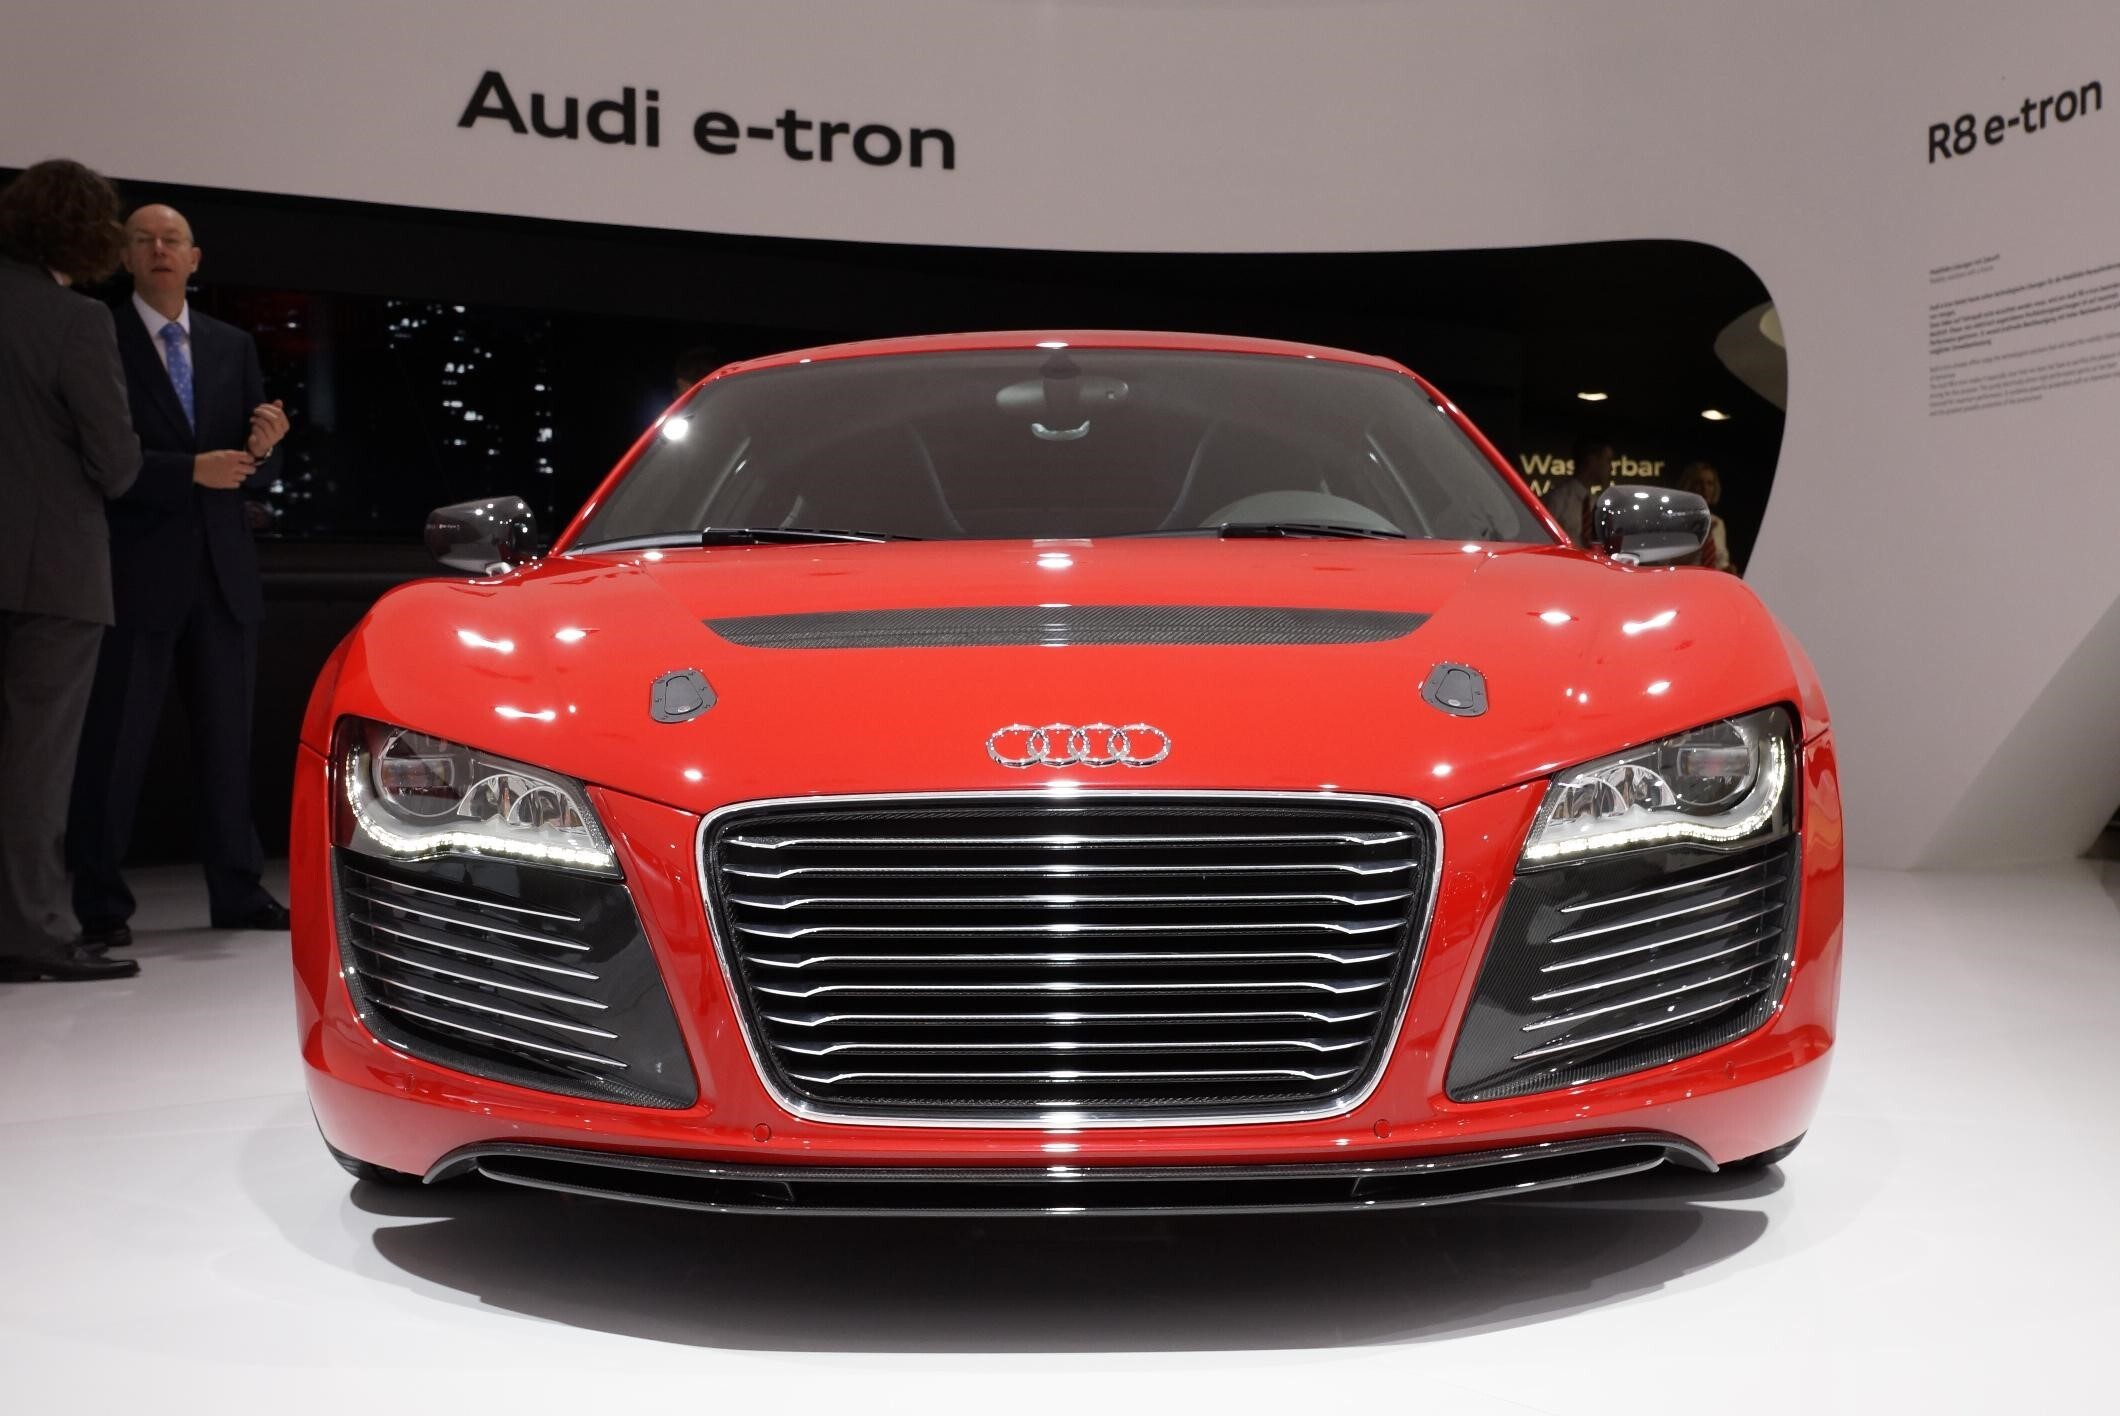 New red latest audi r8 e tron prototype launch car wallpapers hd new red latest audi r8 e tron prototype launch car wallpapers download voltagebd Gallery